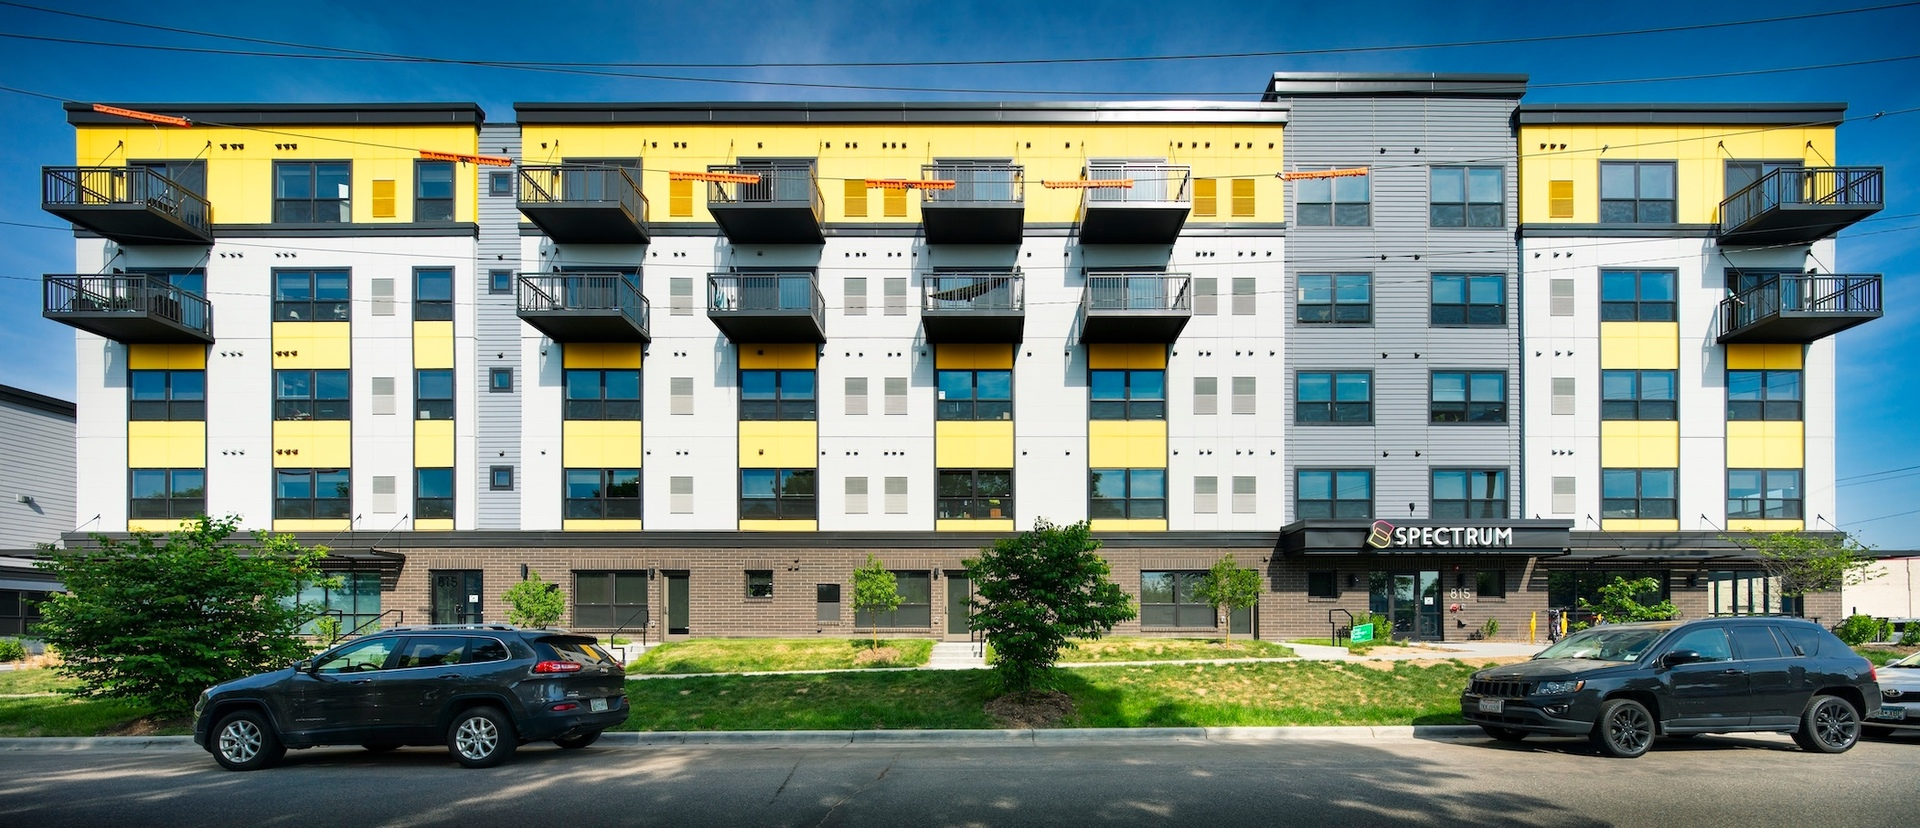 Eye-catching exterior apartment building design at the Spectrum apartments in Minneapolis, Minnesota, by DJR Architecture.